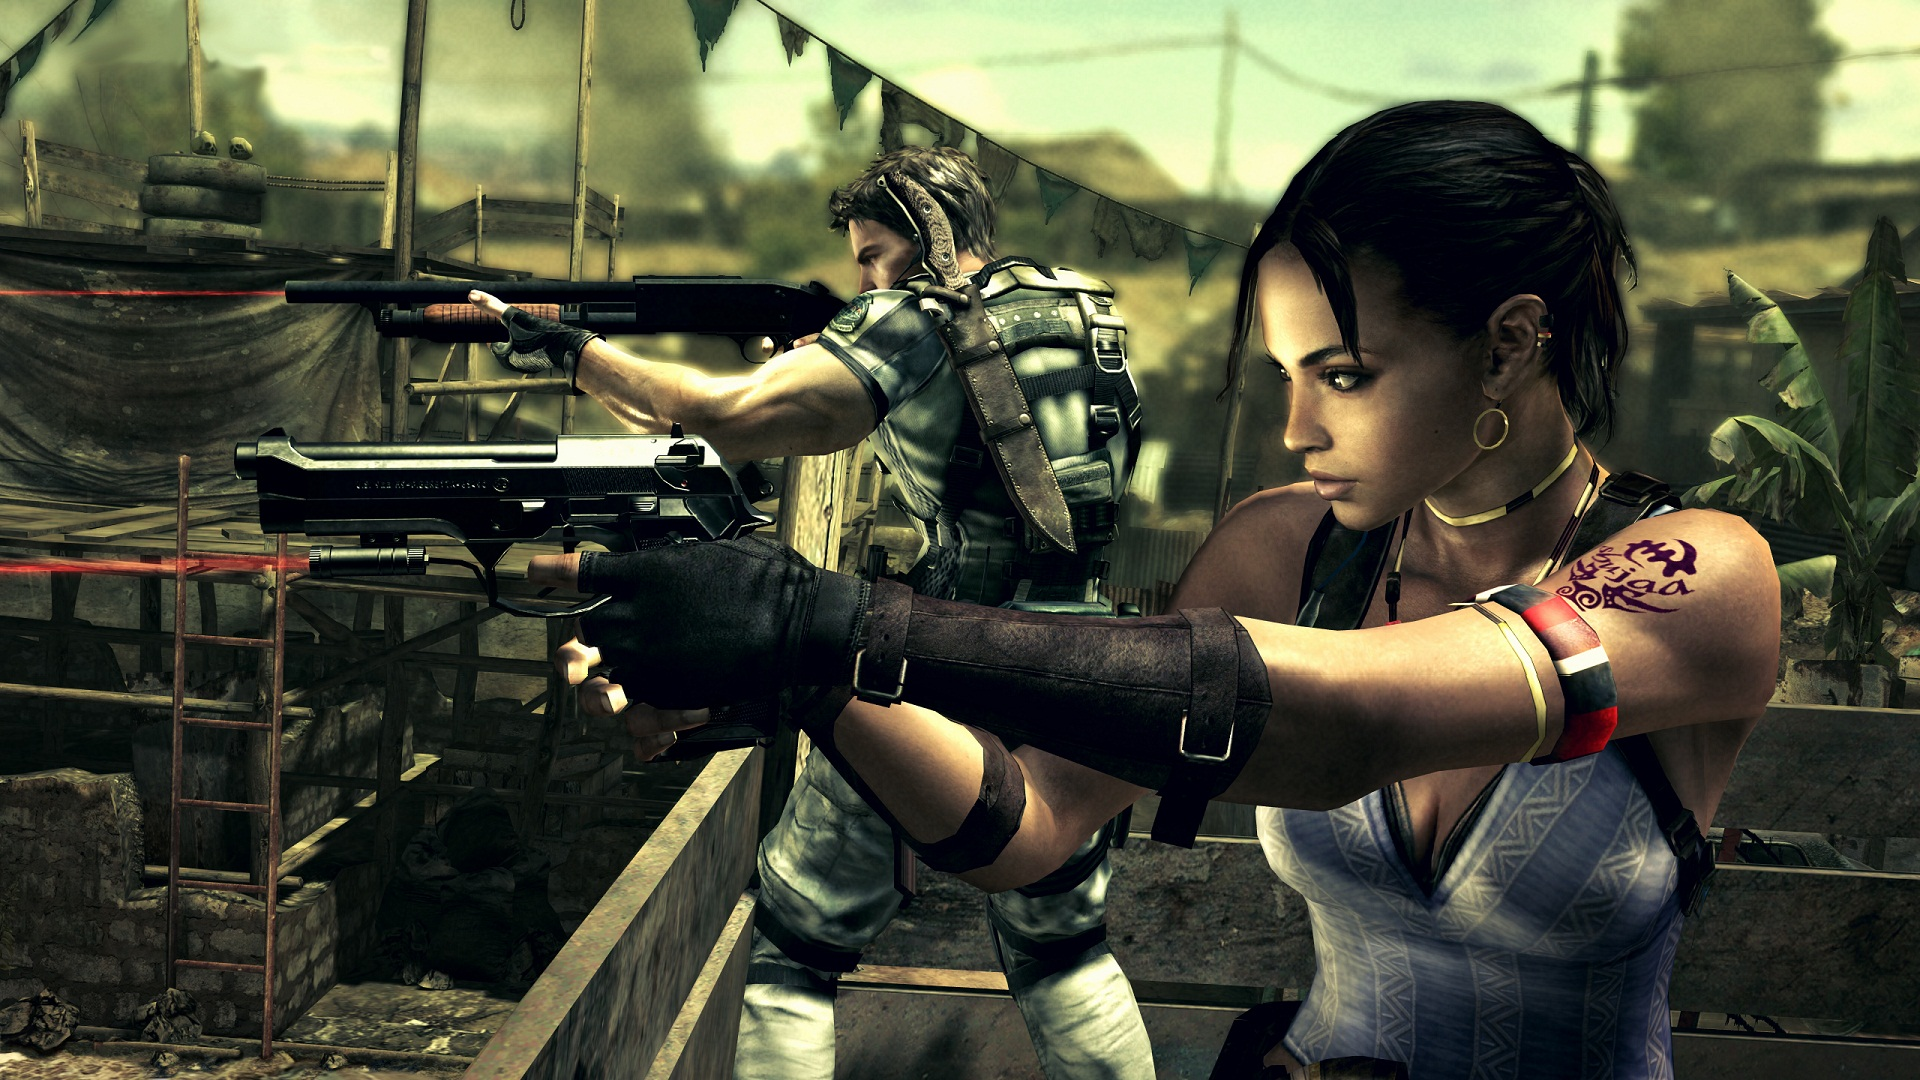 Resident Evil 5 - Dual Death Wallpapers